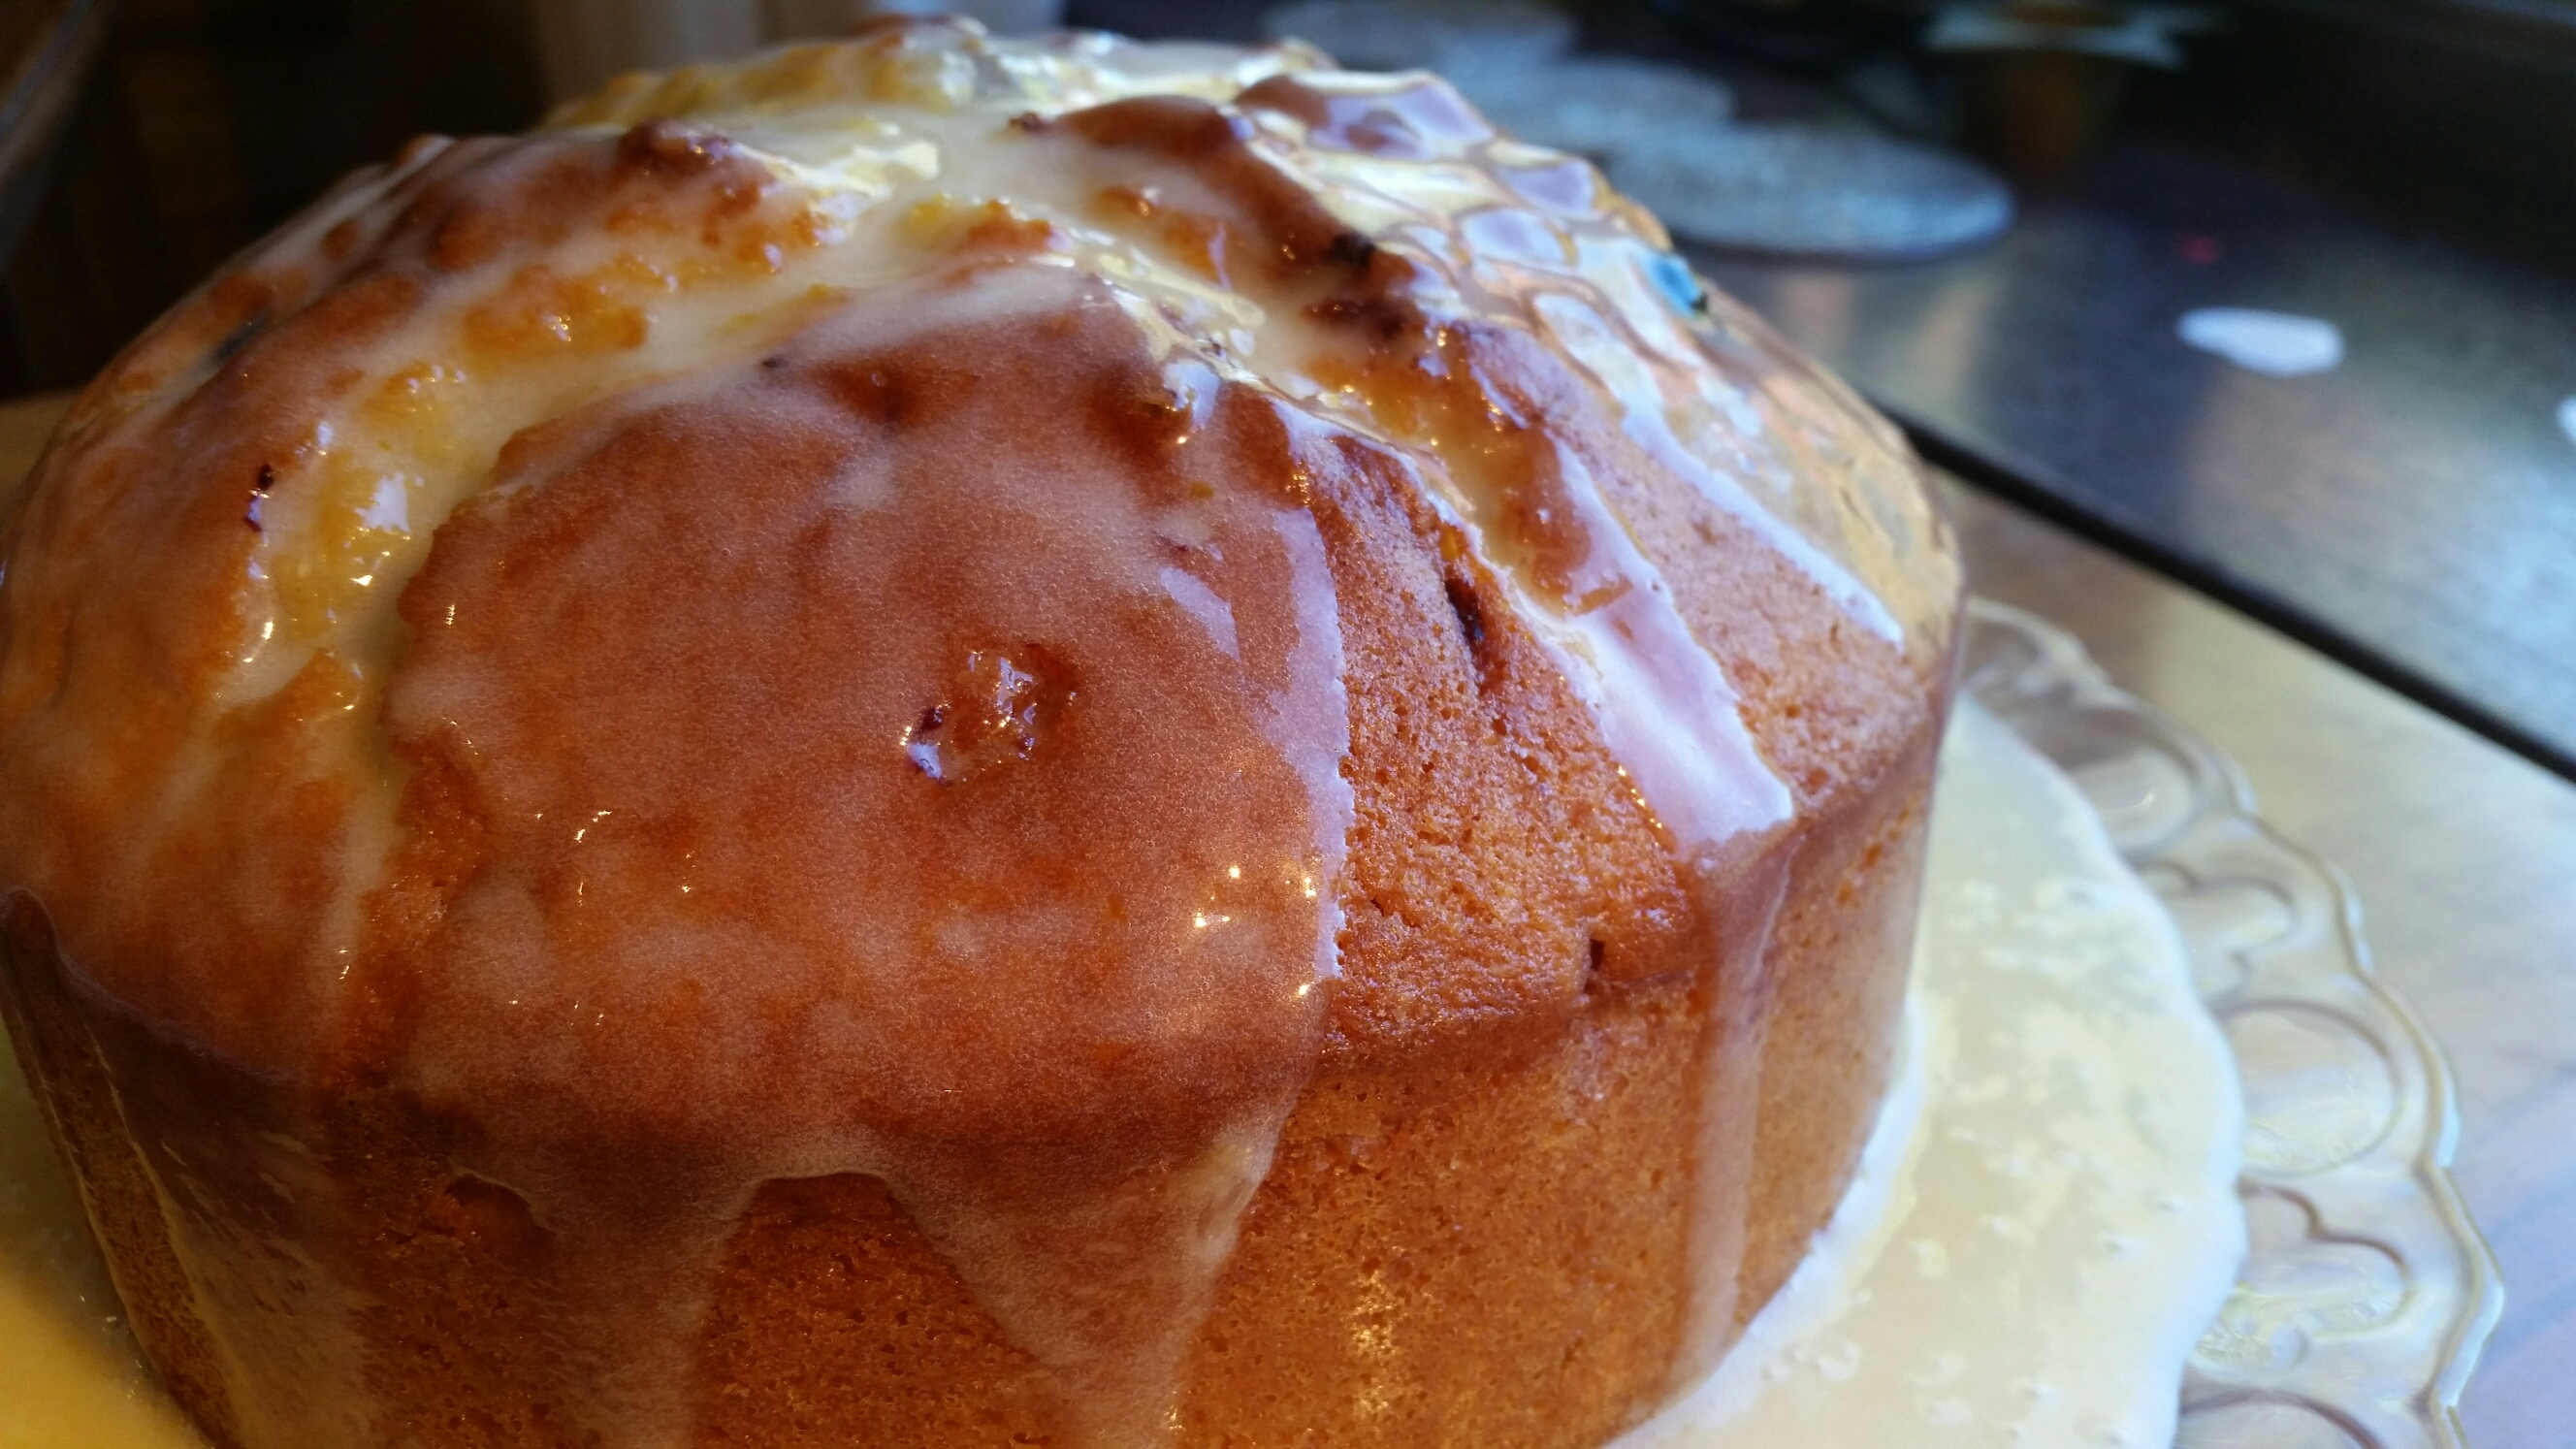 Blueberry passion fruit and lemon drizzle cake